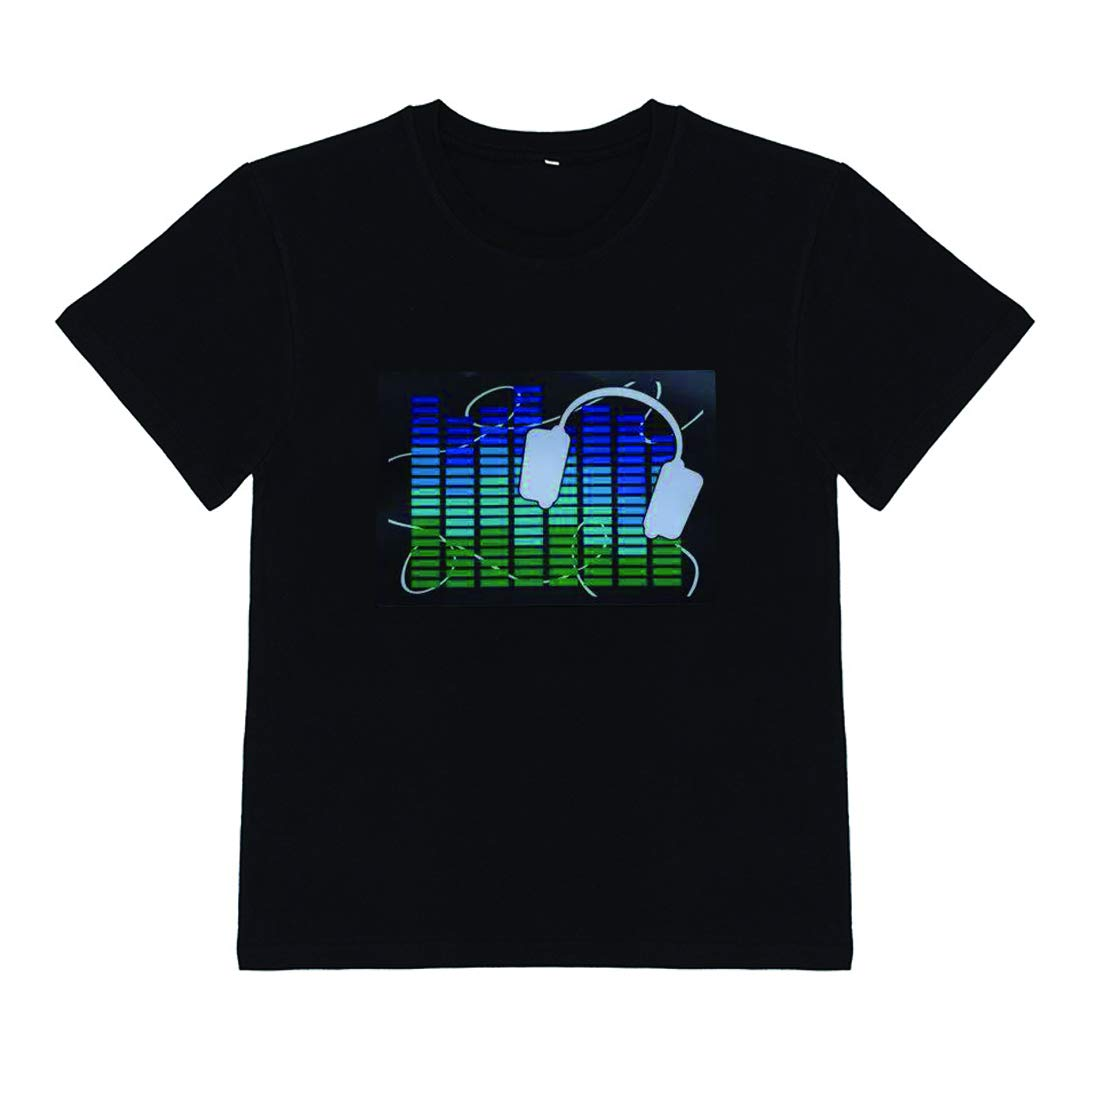 DINIRUKY Kids LED Flashing Shirt Sound Activated Black T Shirt Gift for Birthday Halloween Christmas Nightshow Wear